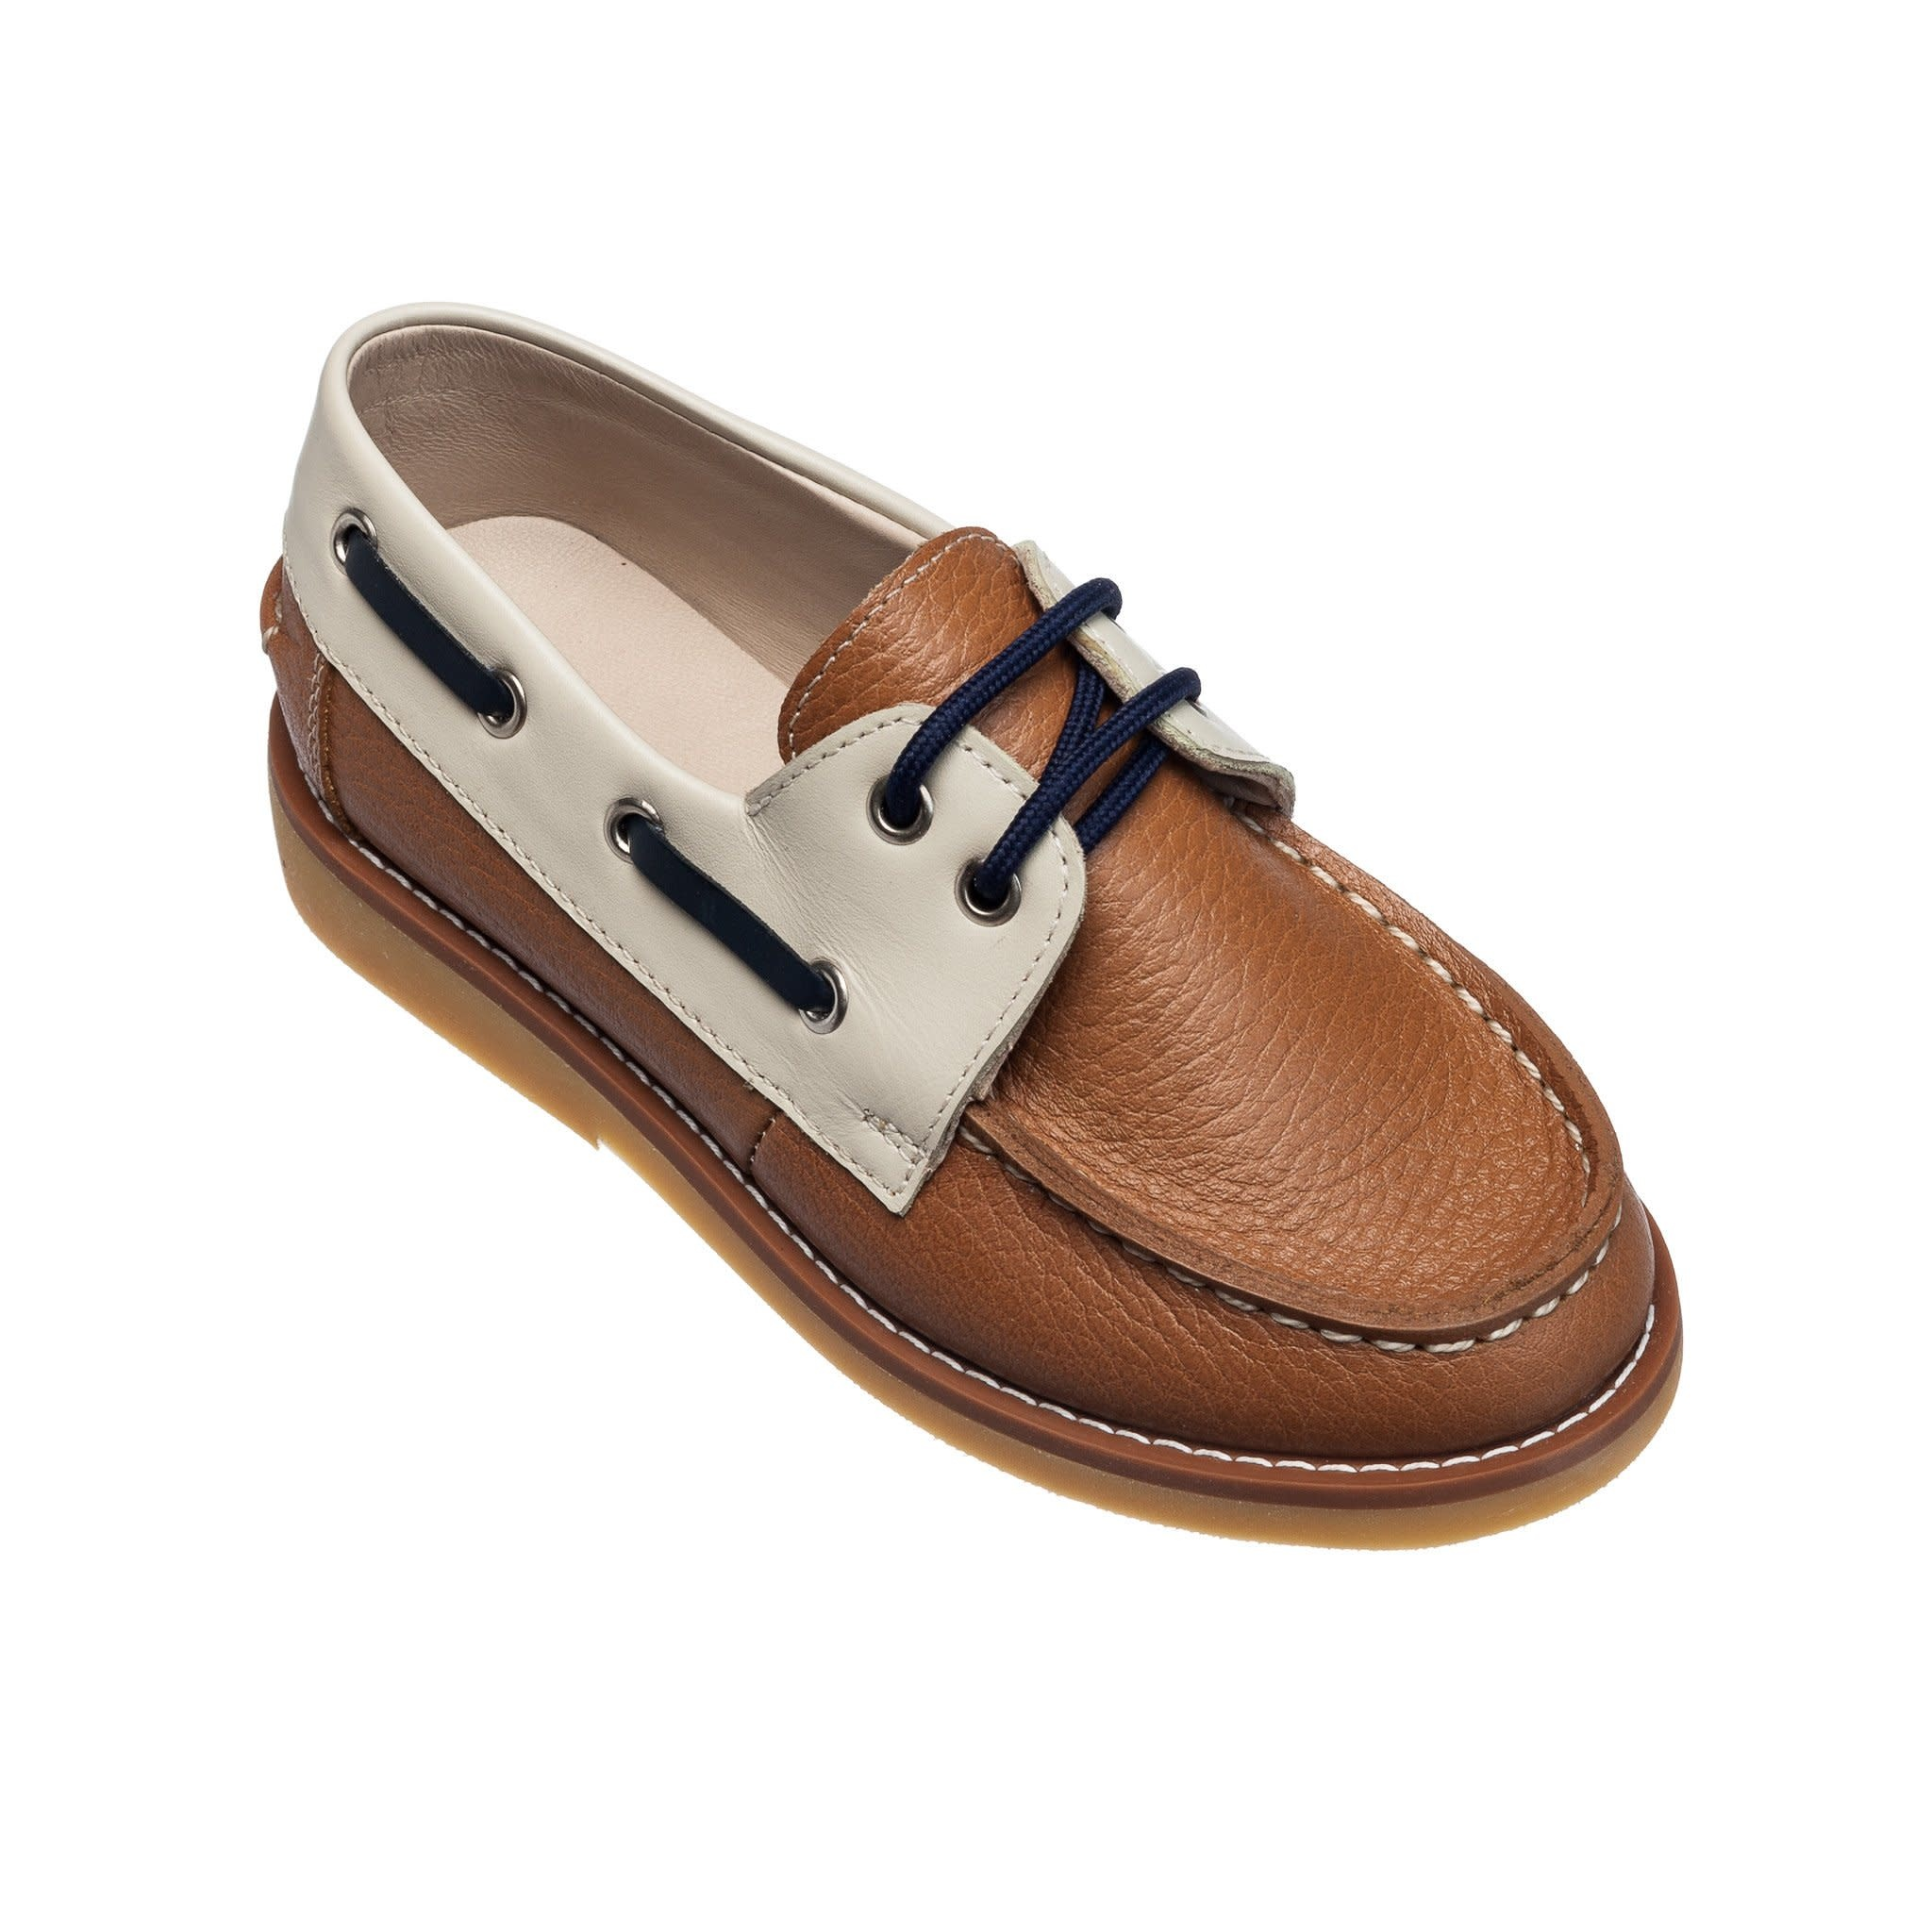 Elephantito Caramel Boat Shoes